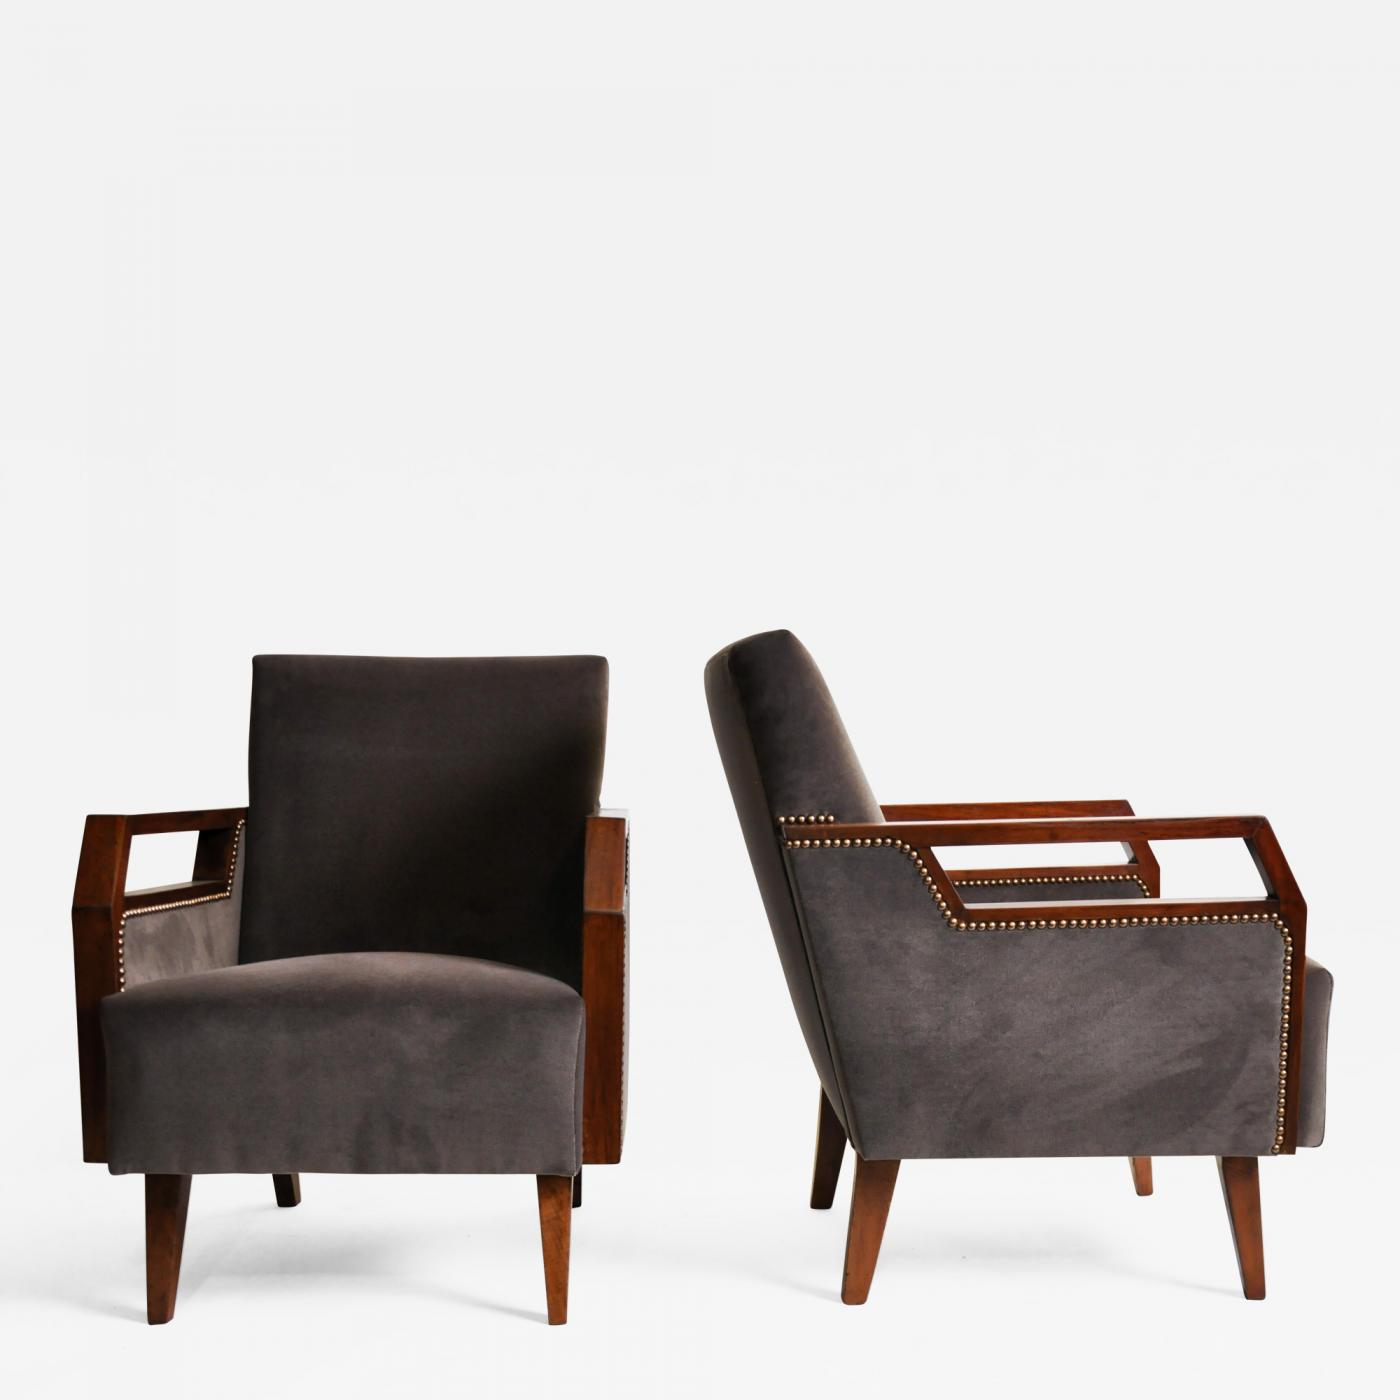 d96cda62d23d8 Listings   Furniture   Seating   Club Chairs · Pair of Mid Century ...